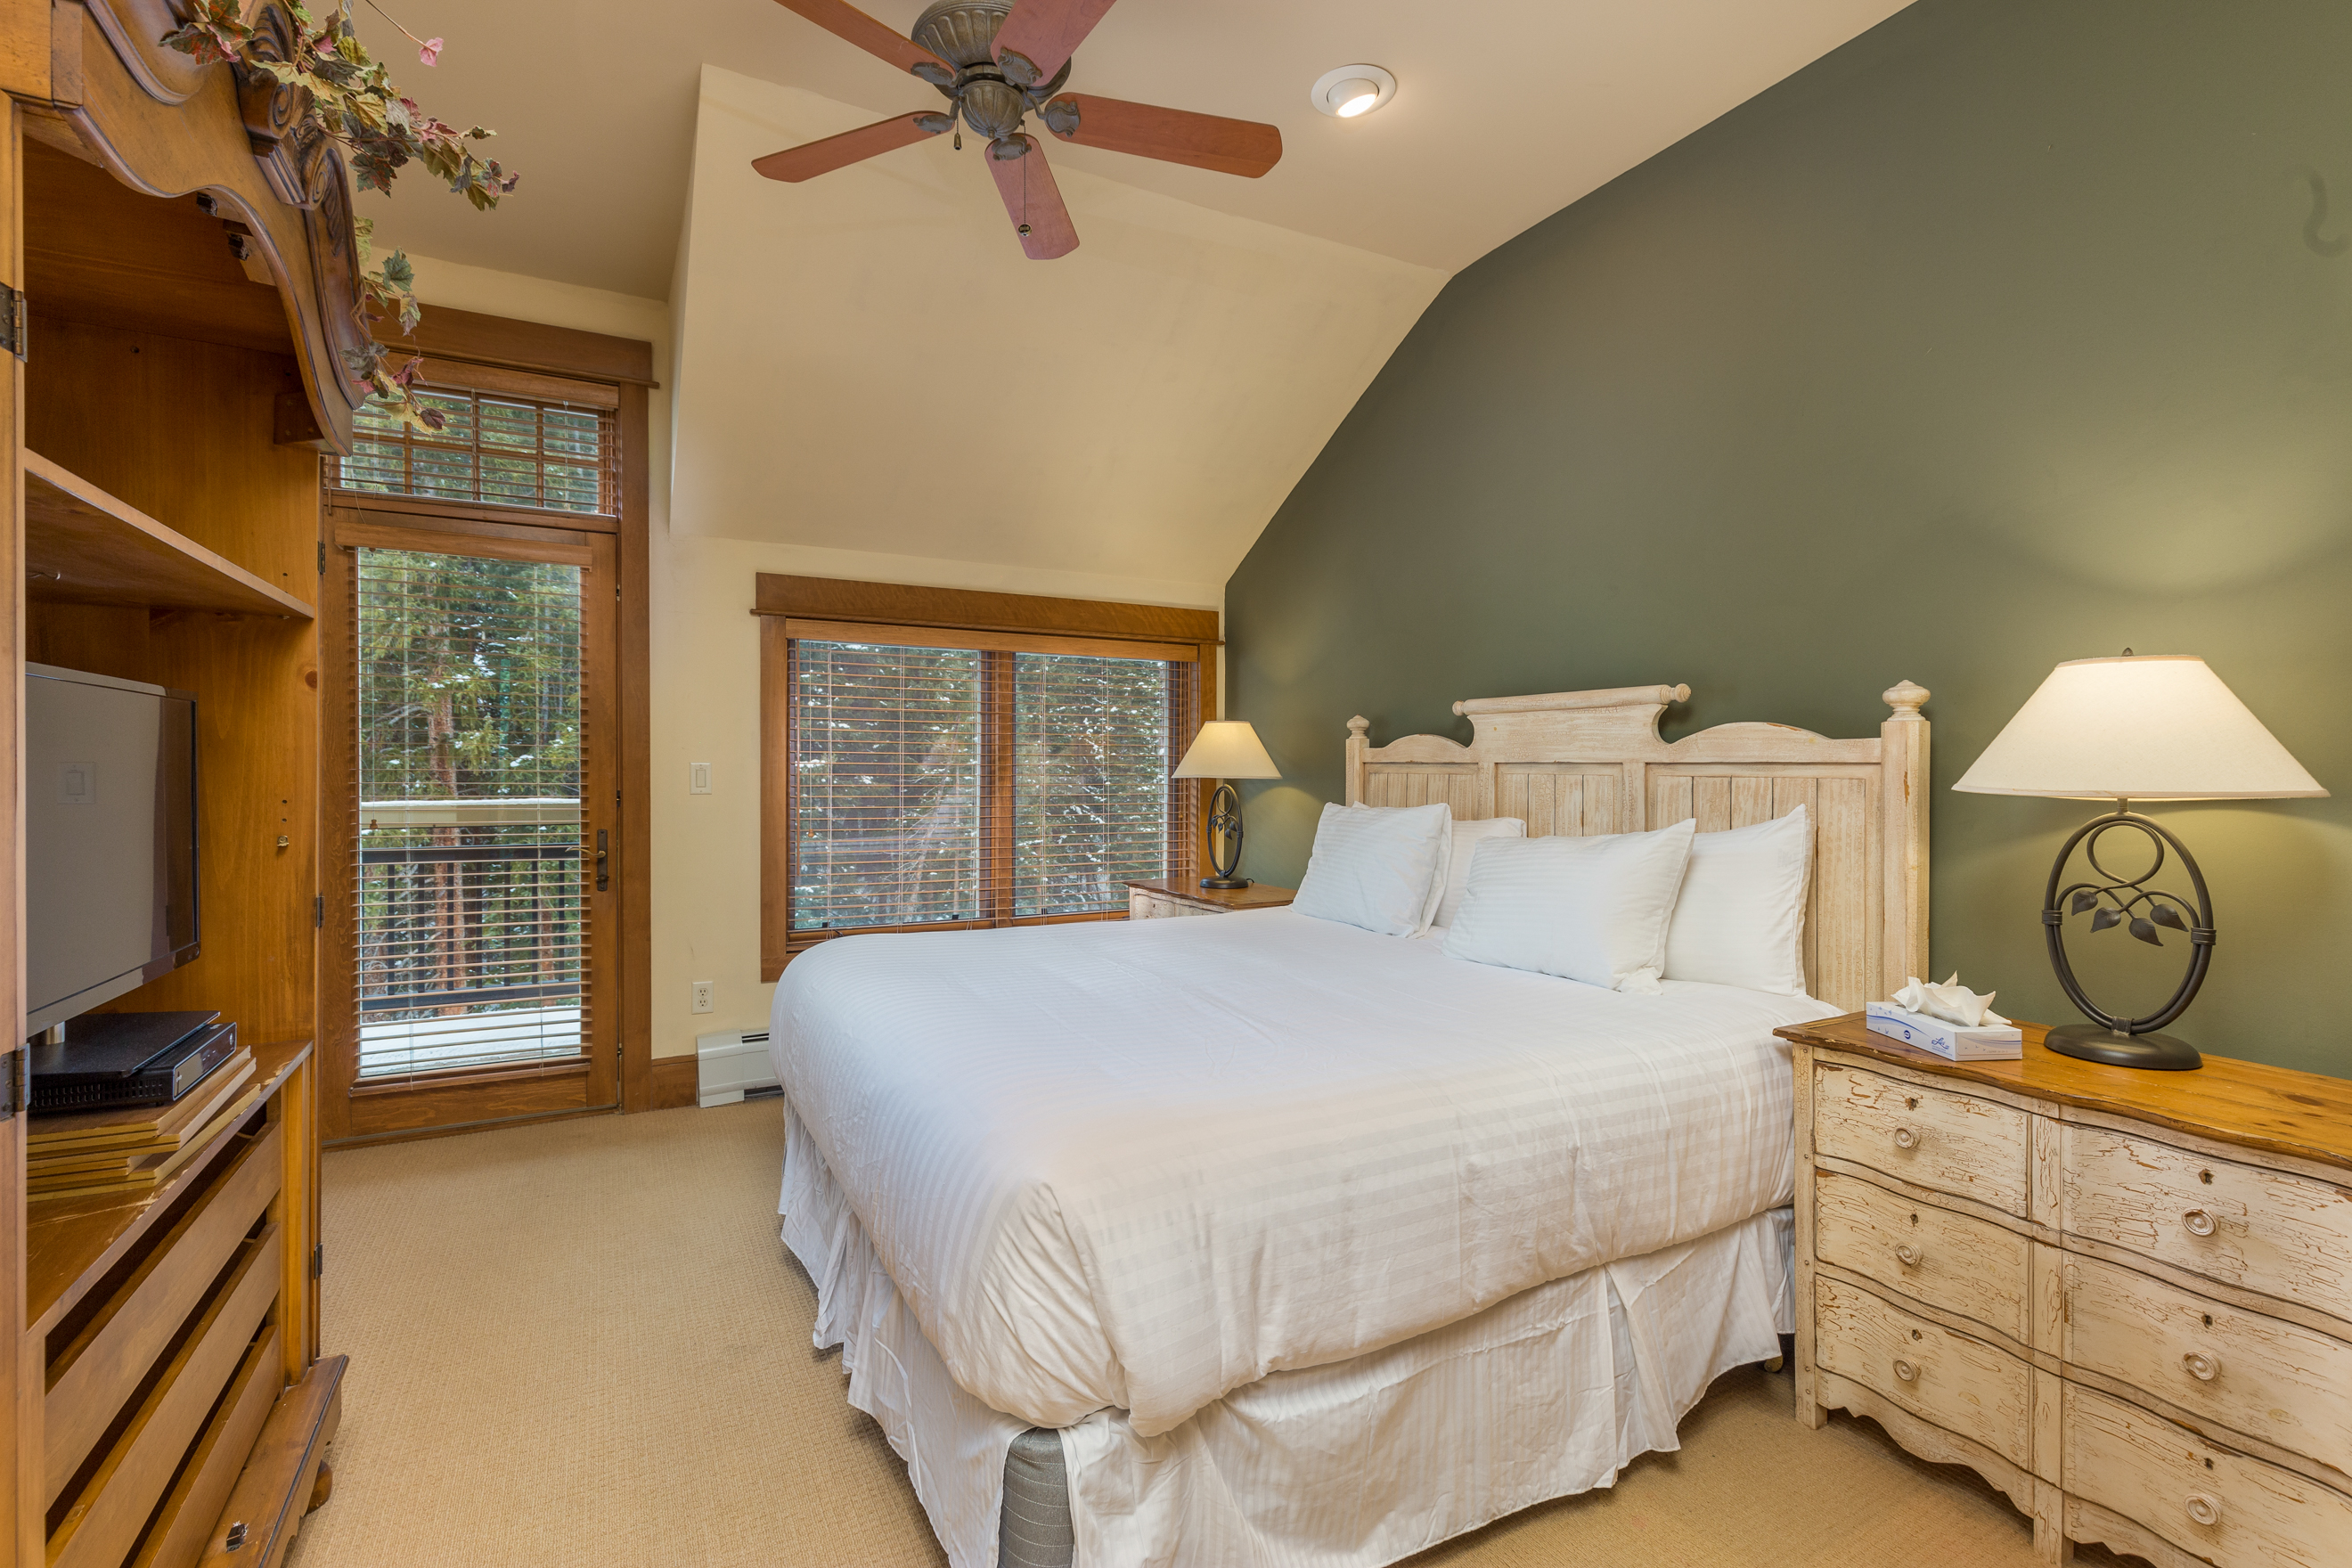 The first master bedroom features a king-sized bed with Ivory White Bedding, a flat screen TV and access to the main balcony.